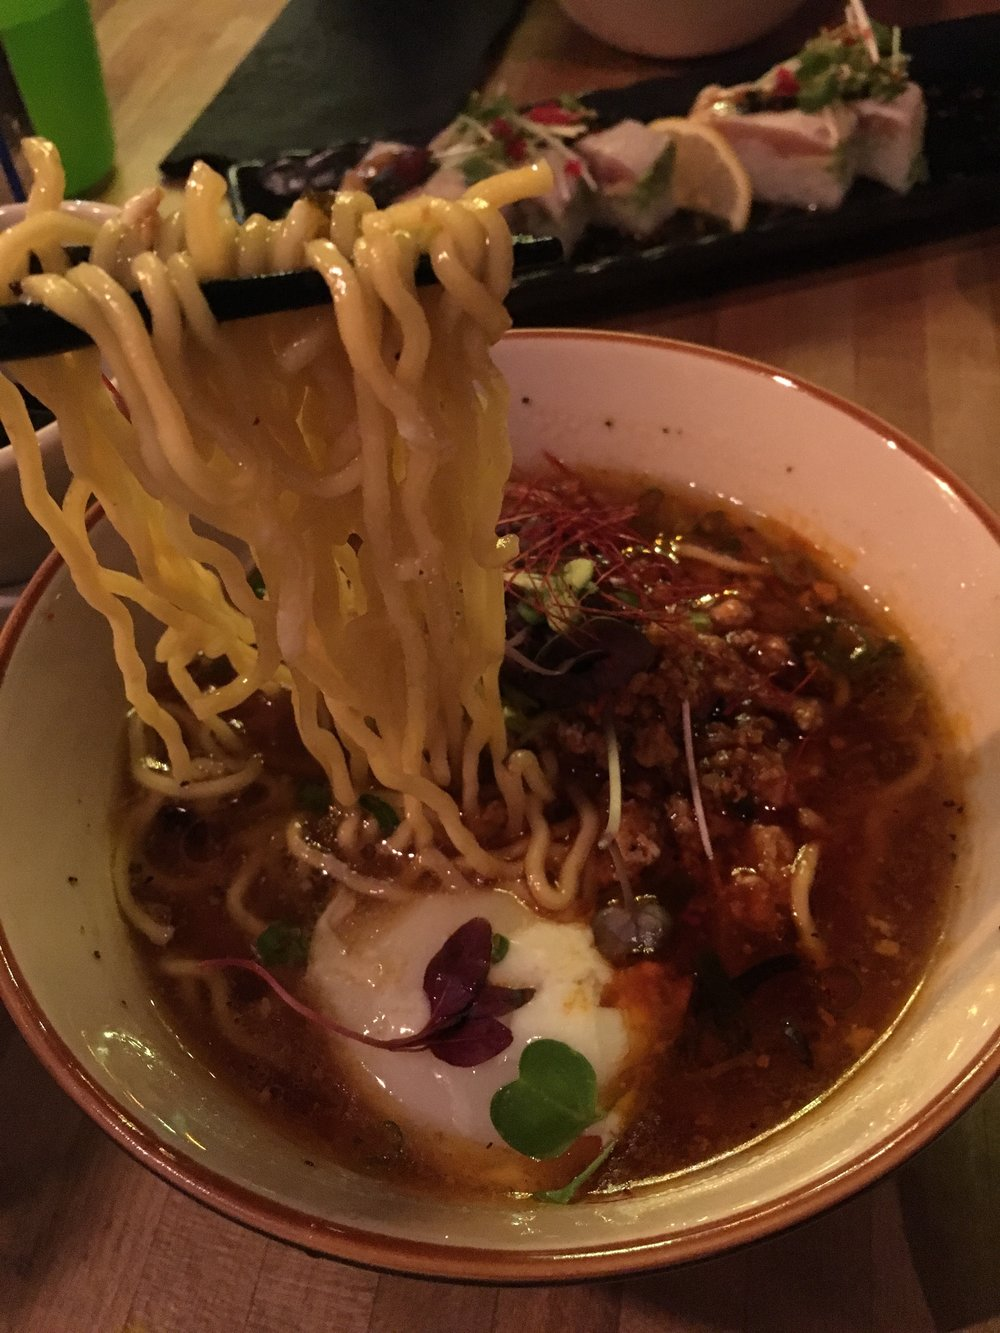 The Hellz Ramen - Suika Seattle - Seattle, WA